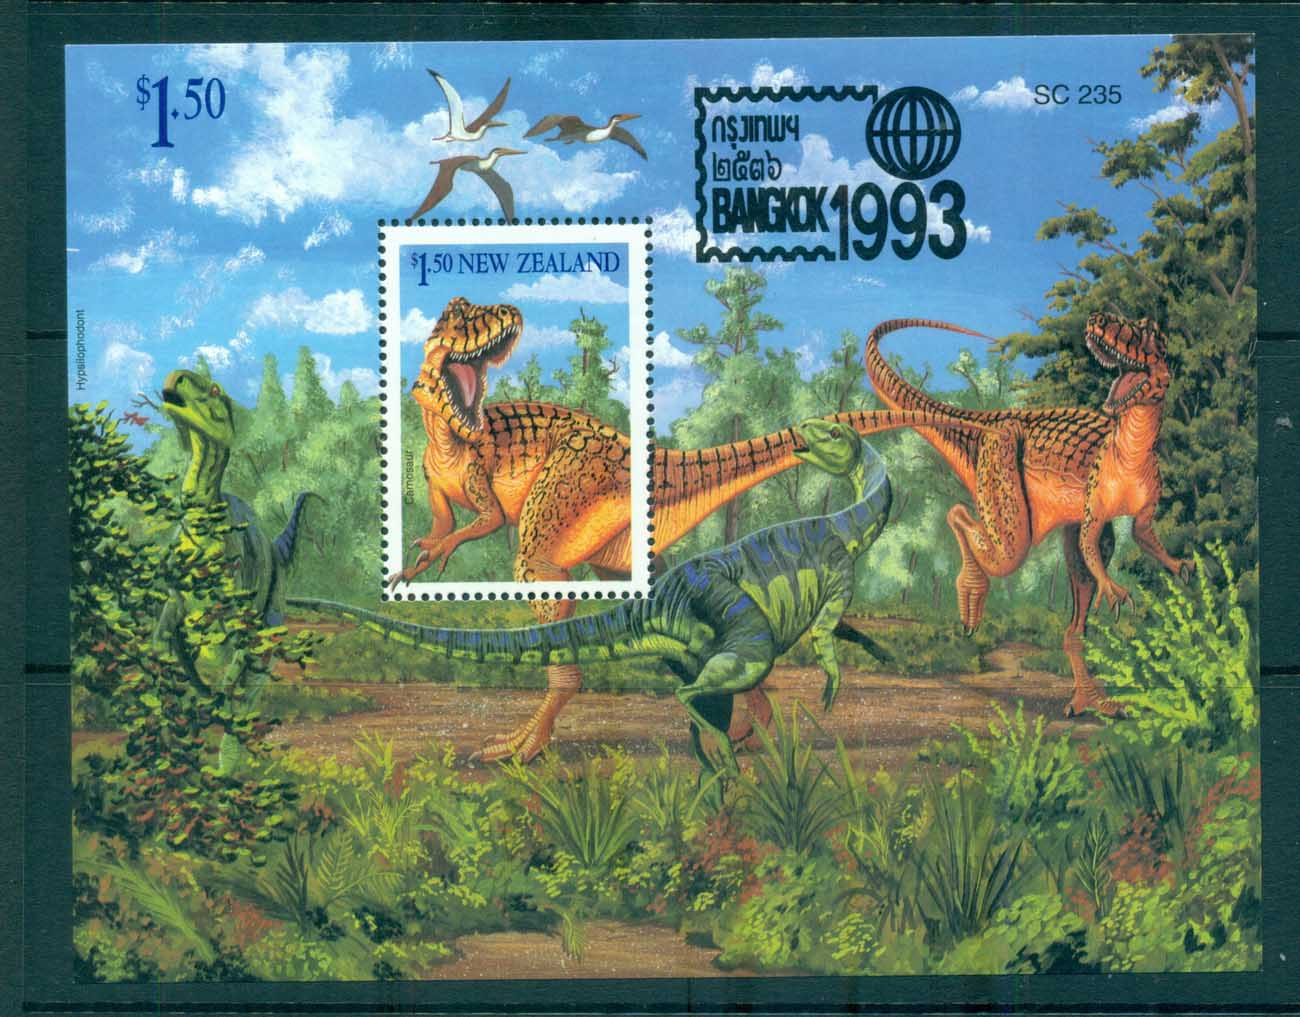 New Zealand 1993 Dinosaur, Bangkok '93 MS MUH lot72347